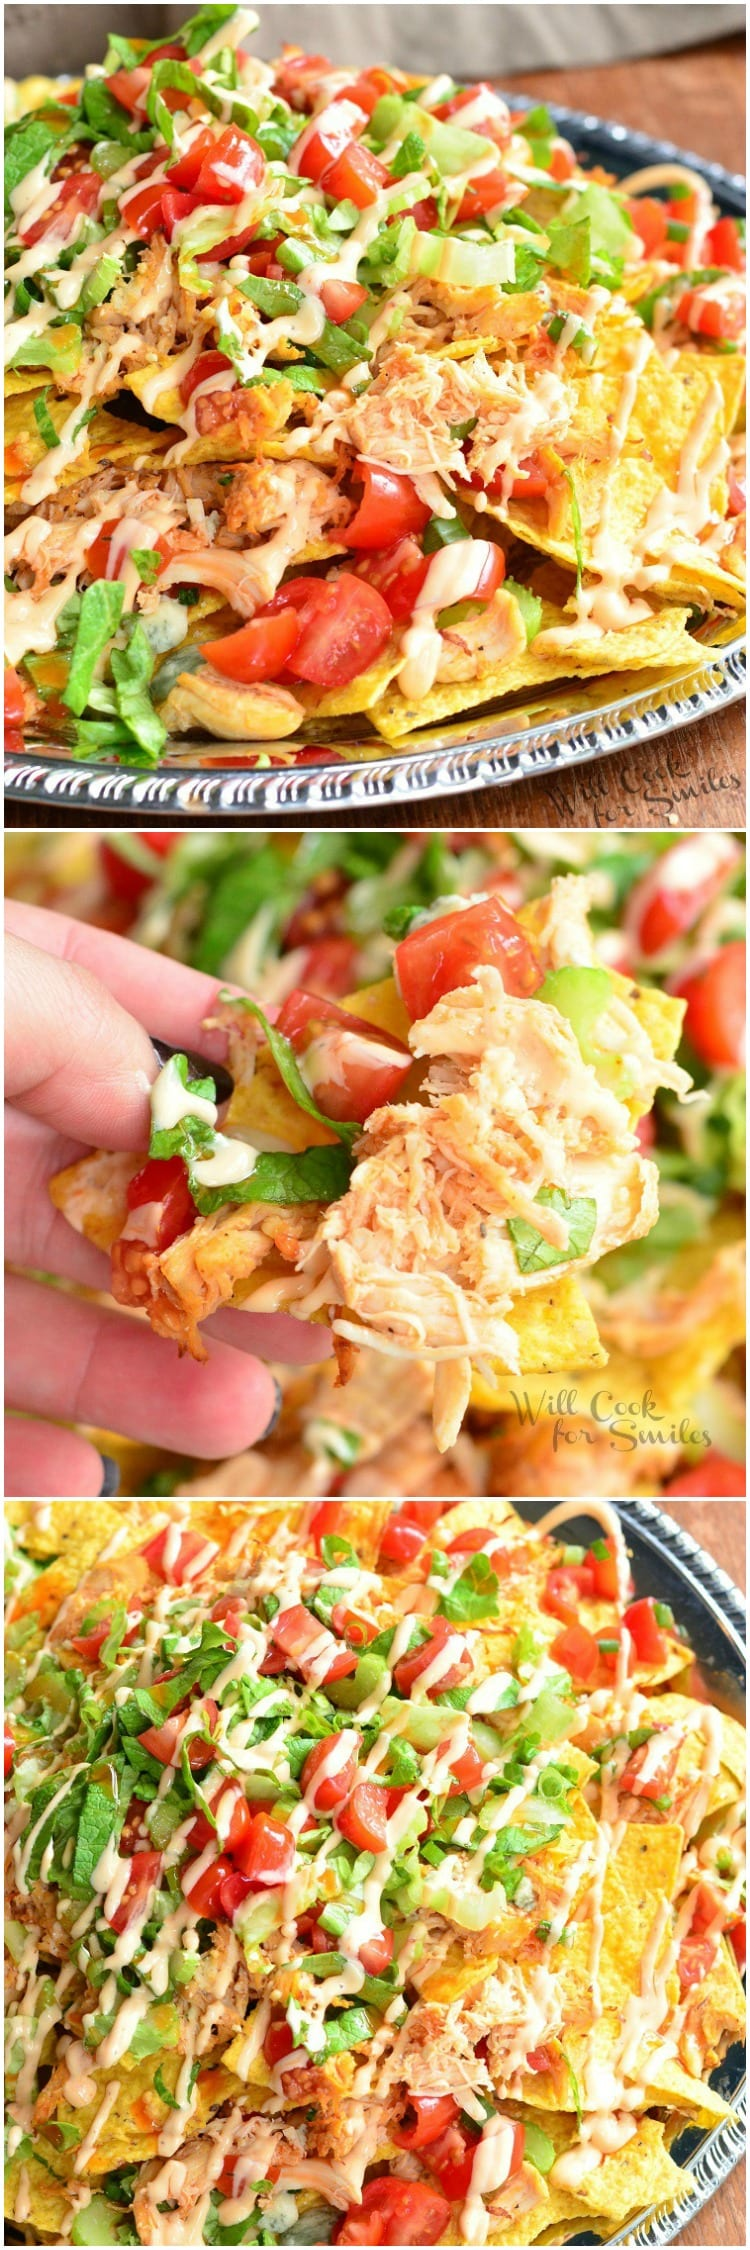 Buffalo Chicken Nachos recipe made with crispy tortilla chips, spicy buffalo sauce coated shredded chicken, blue cheese, veggies, more cheese and buffalo ranch dressing. #nachos #chicken #spicy #buffalochicken #chickennachos